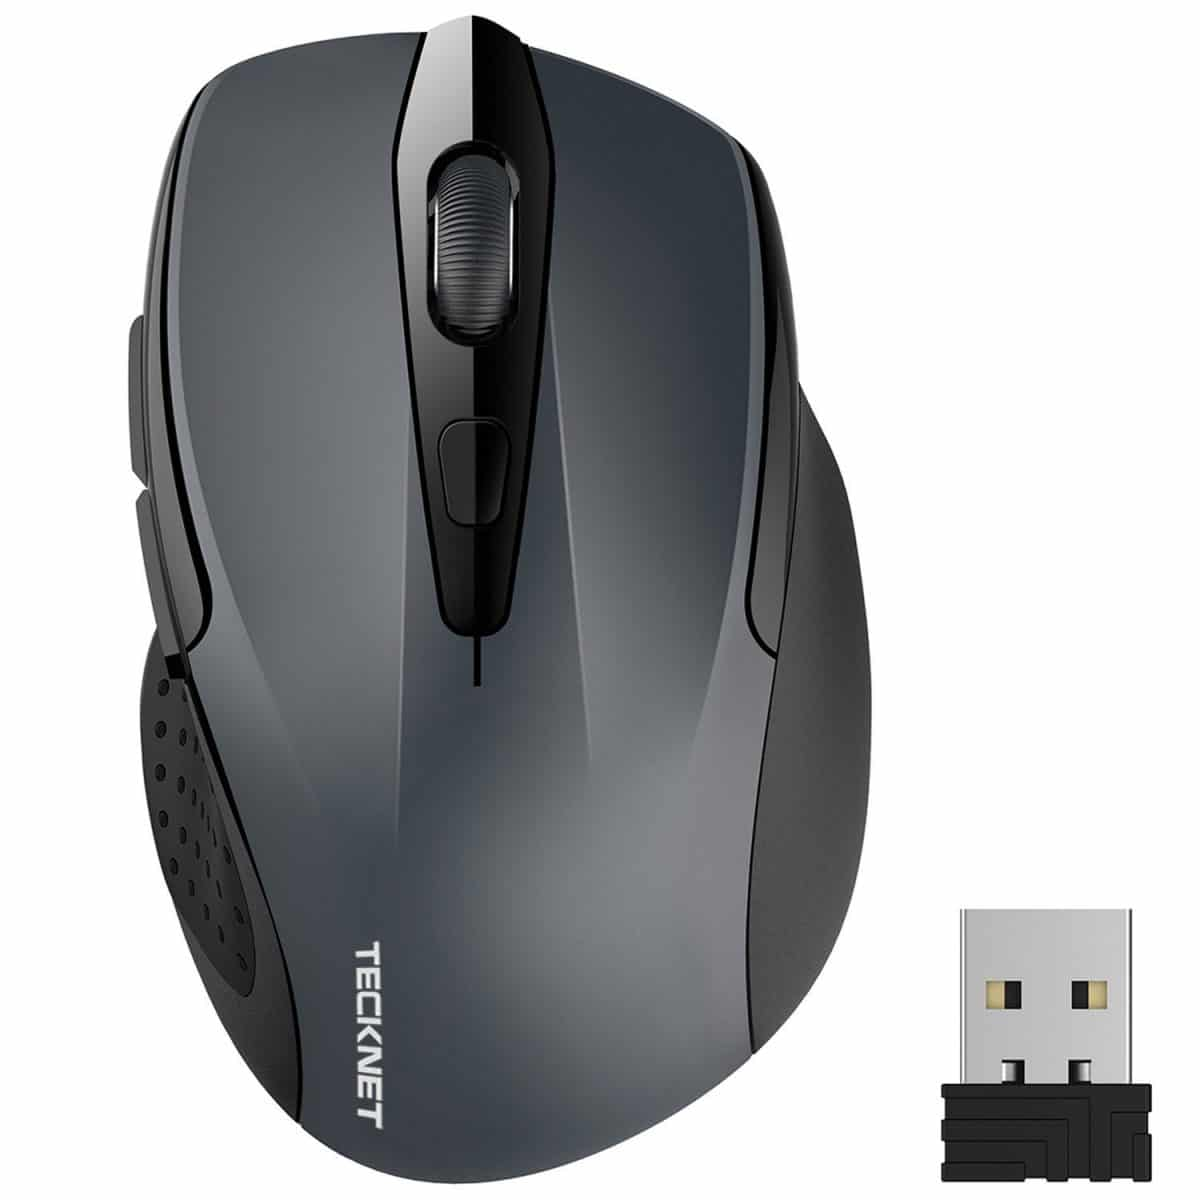 Best Cheap Wireless Mouse 2019 (Under $50 / $20) - BudgetReport